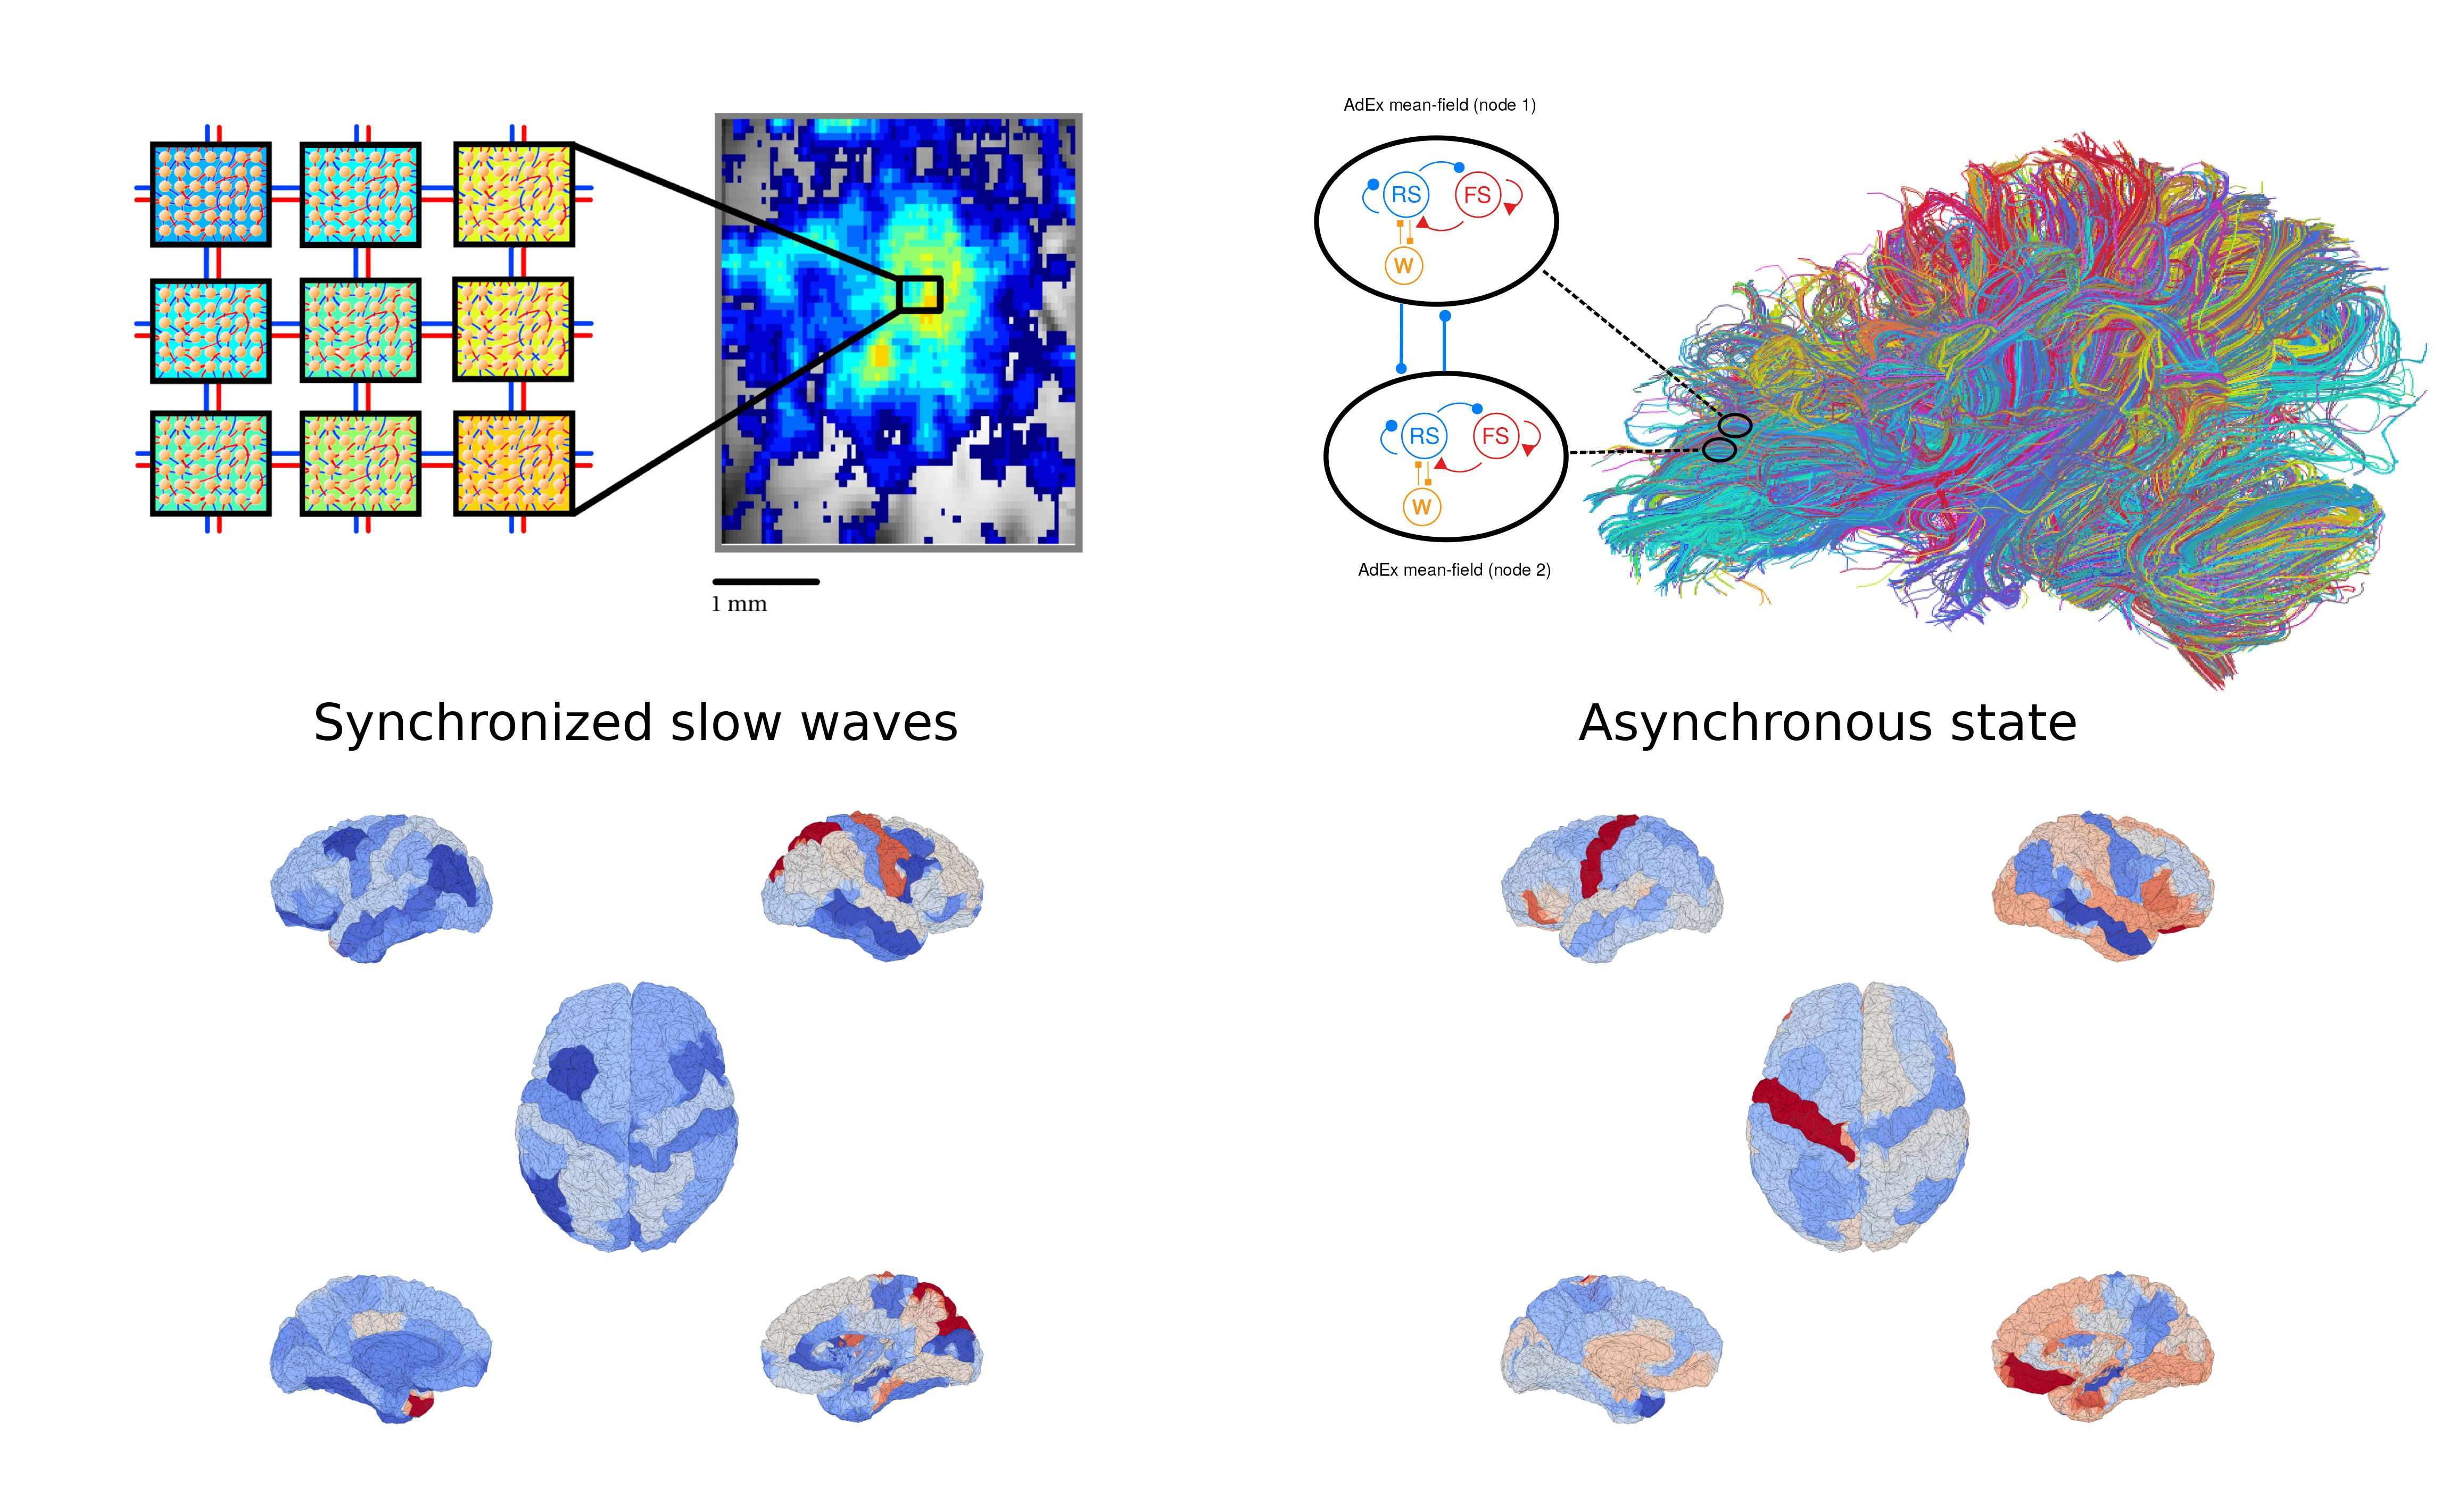 red-blue-spontaneous-brain-activity-2mb.jpg